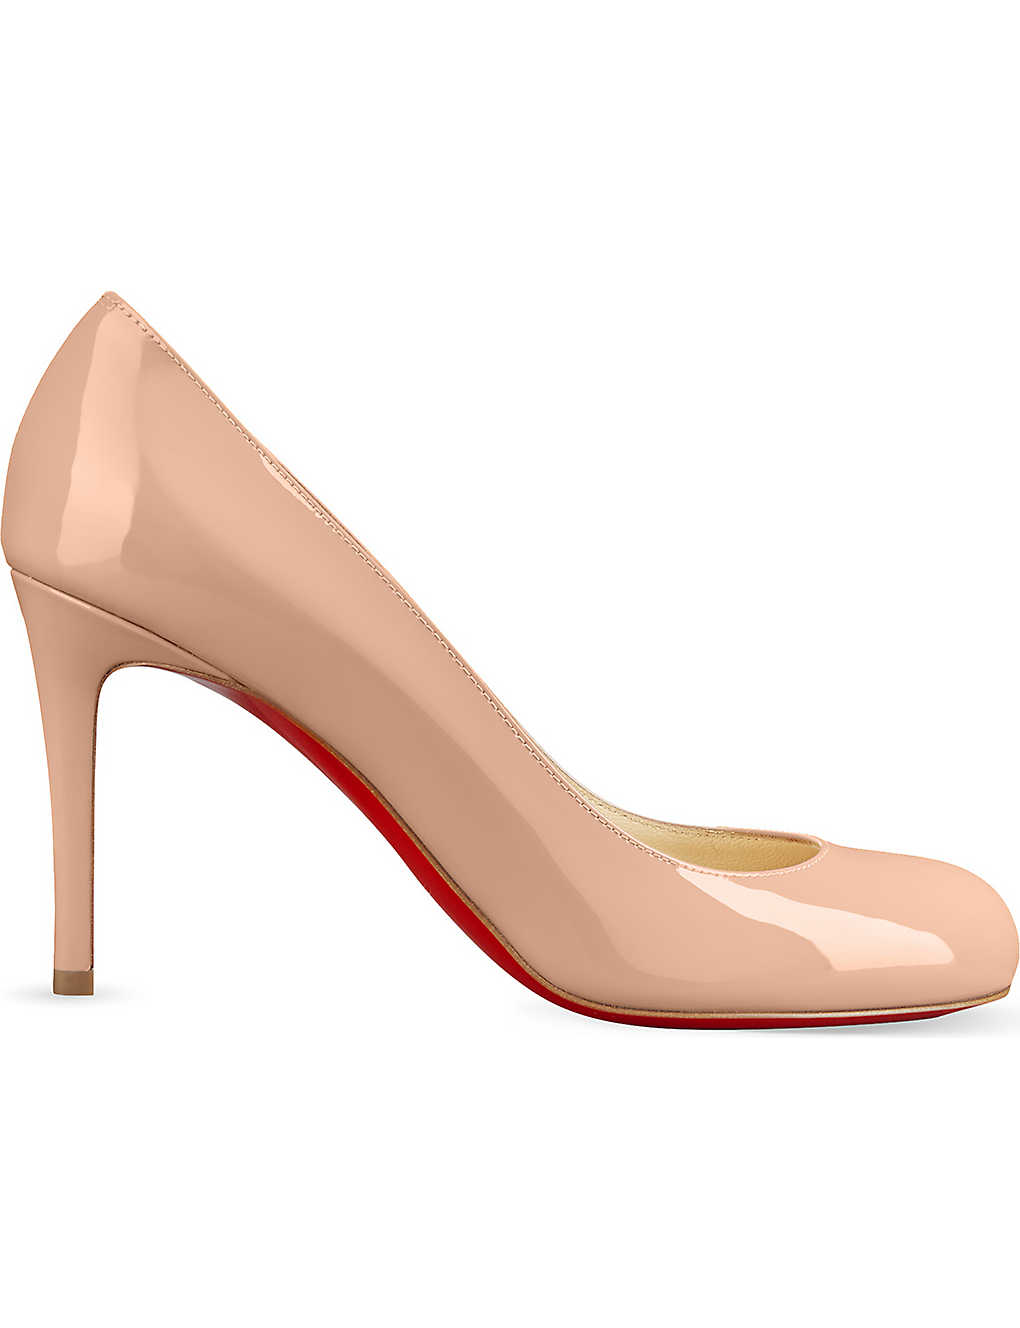 CHRISTIAN LOUBOUTIN: Simple Pump 85 patent calf